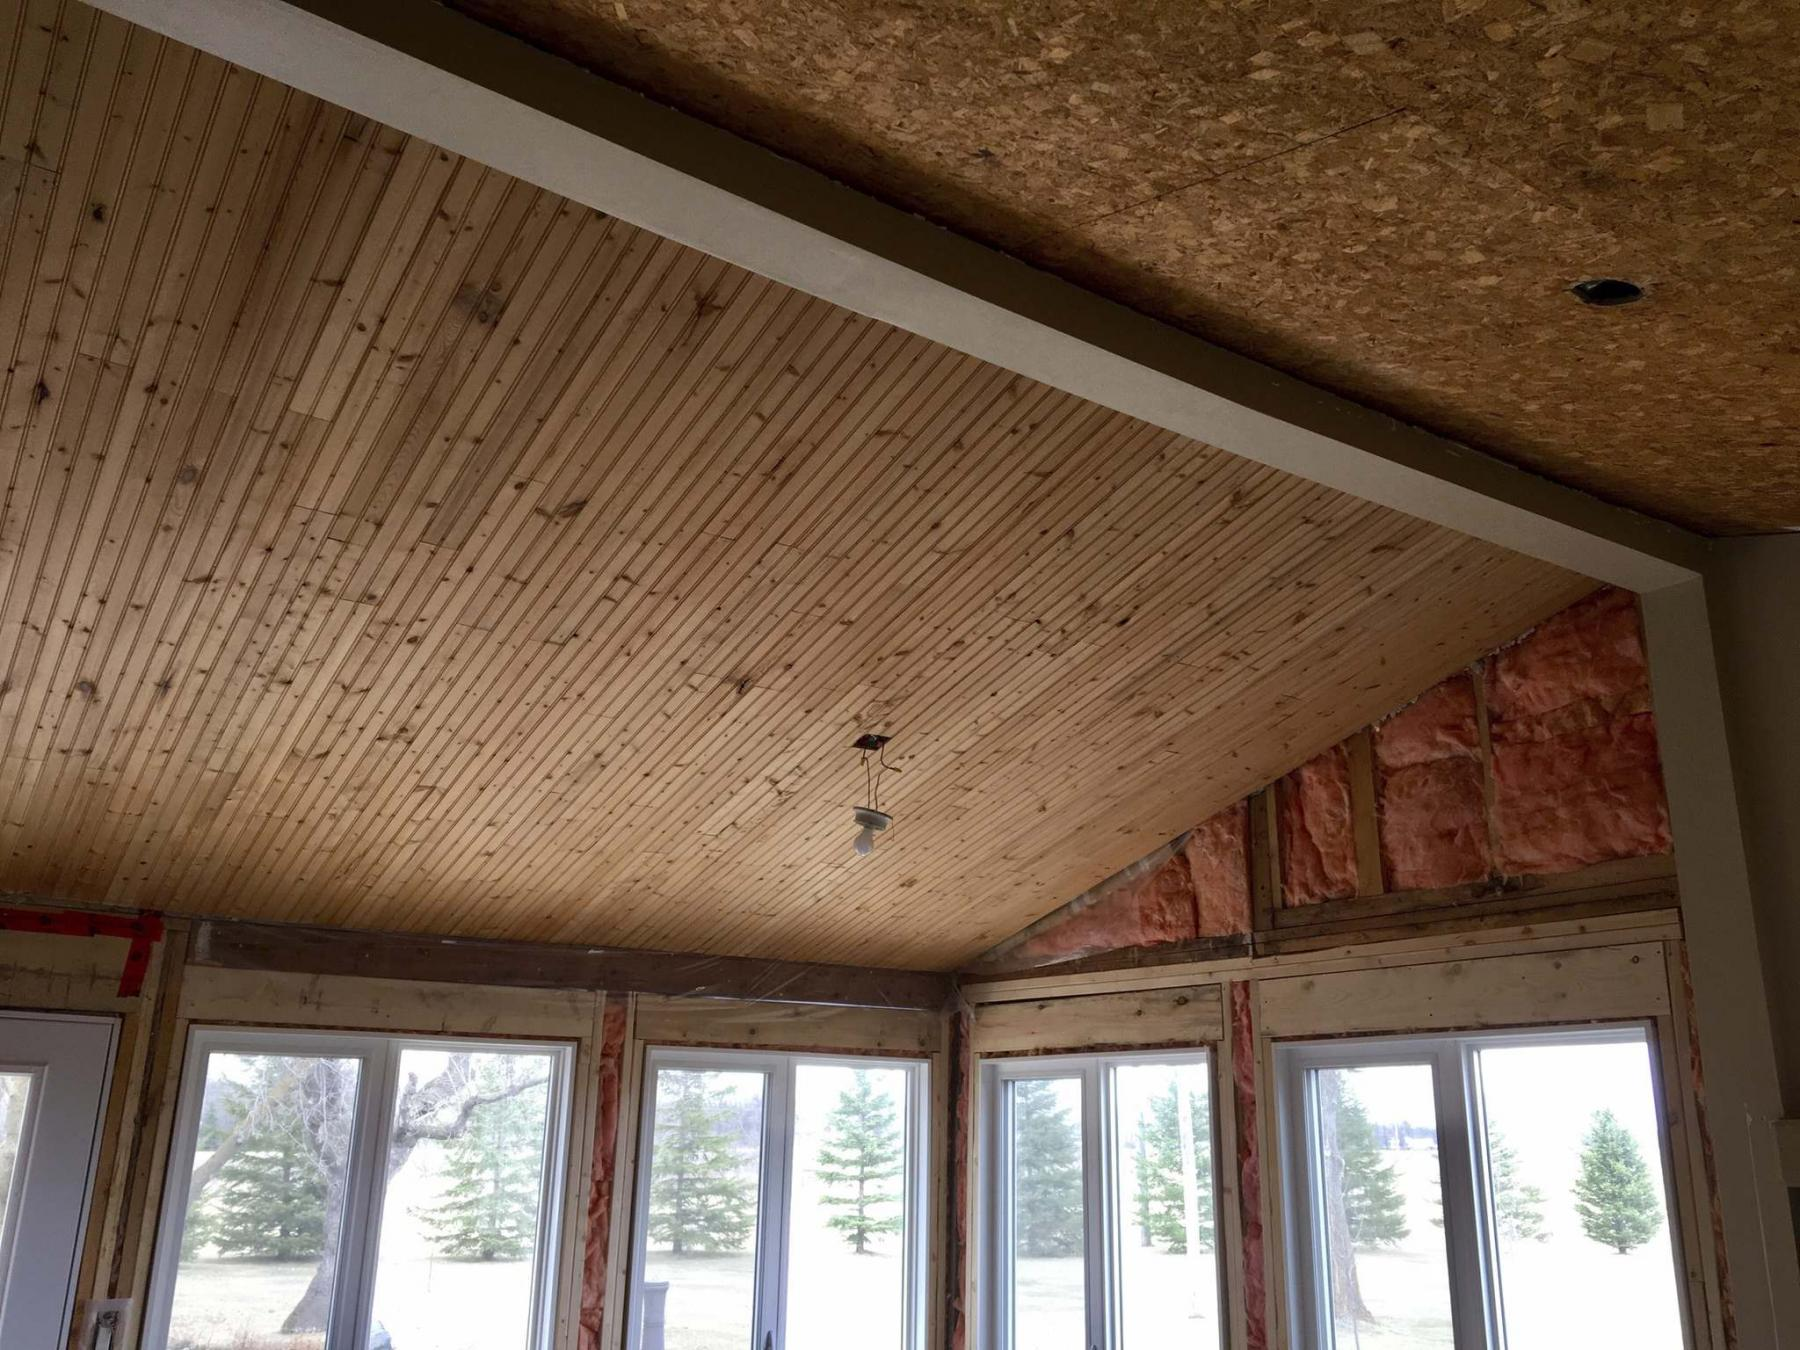 <p>Marc LaBossiere / Winnipeg Free Press</p><p>The tongue-and-groove pine from the kitchen side of the main beam was carefully removed, recycled and installed on the old porch side of the ceiling to make way for the new dining room area. </p>